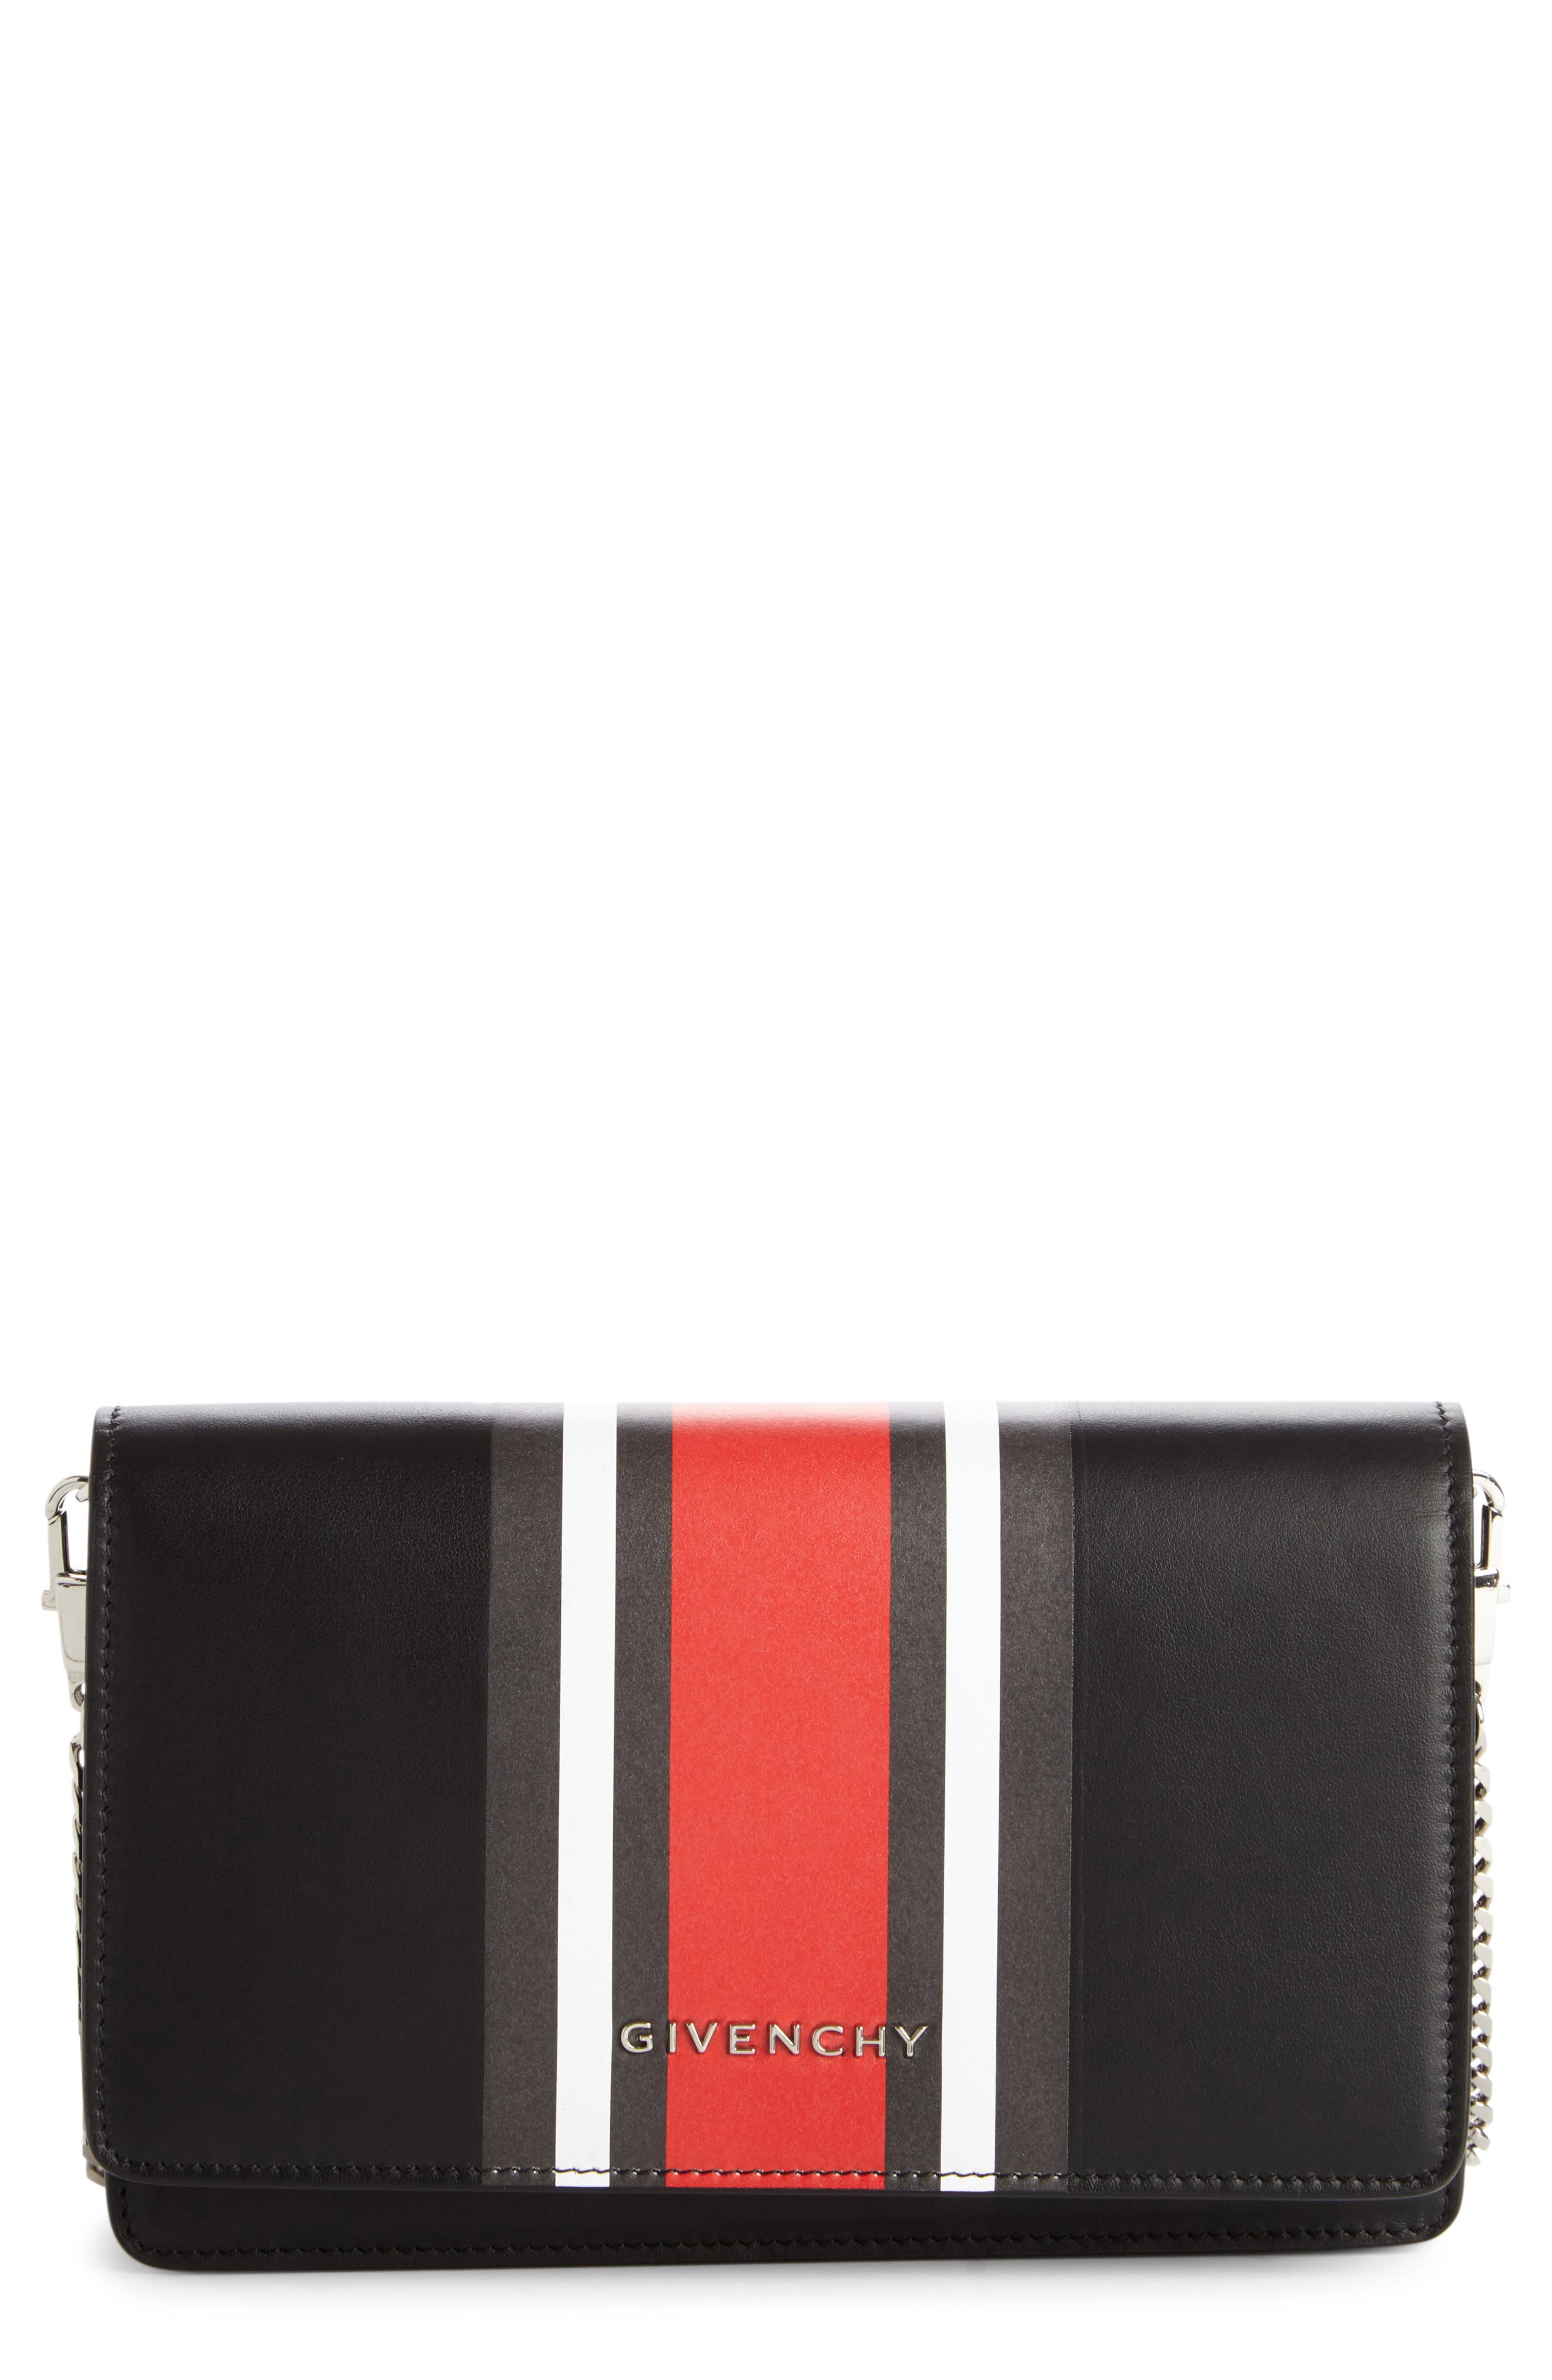 GIVENCHY Pandora Calfskin Leather Wallet on a Chain